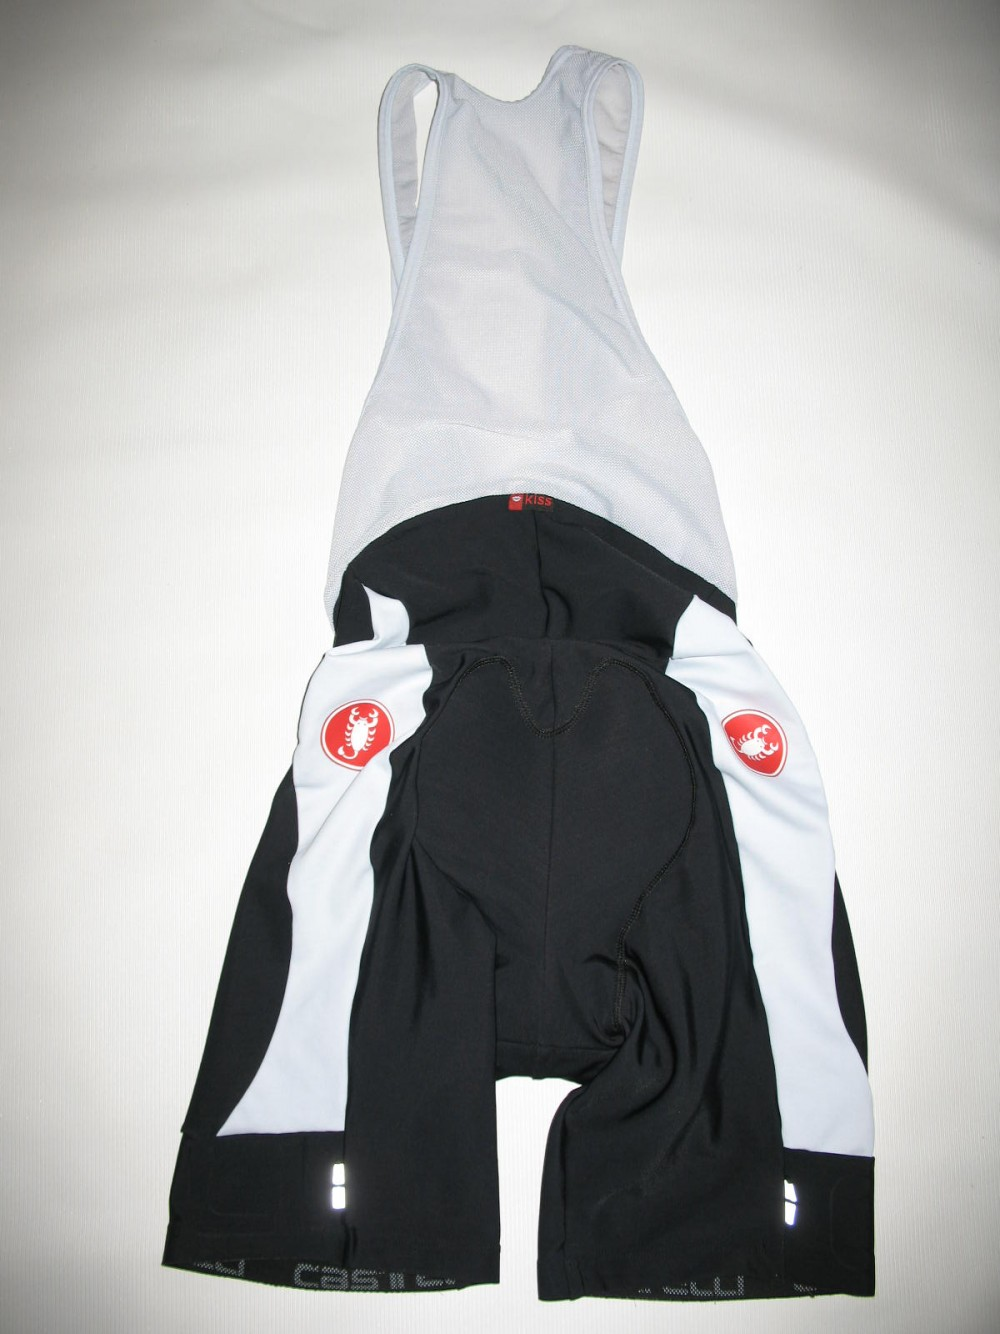 Велошорты CASTELLI kiss cycling bib shorts lady (размер XXL(реально L/M)) - 1